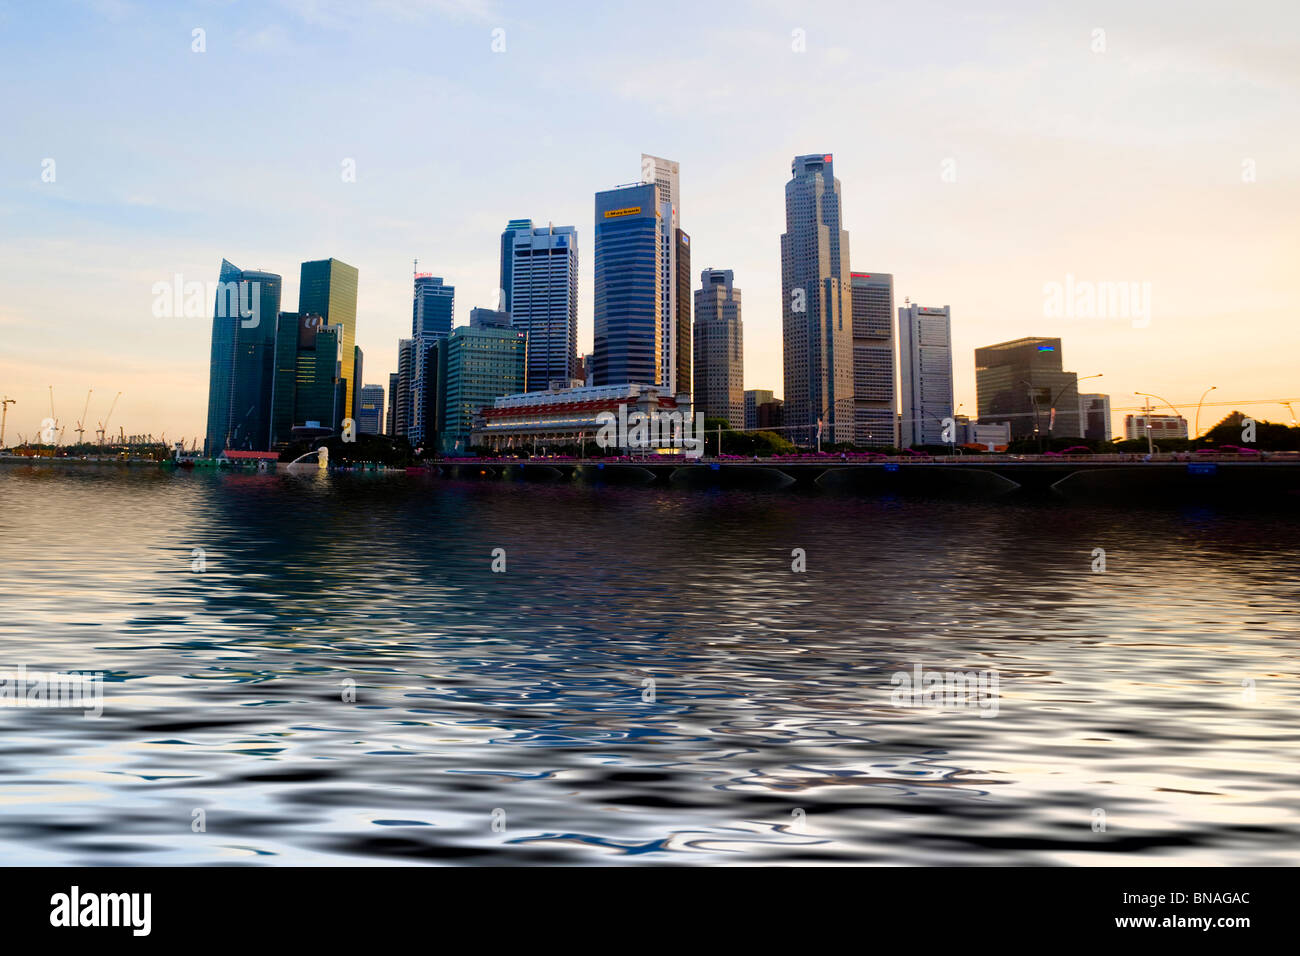 Skyline di Singapore Immagini Stock